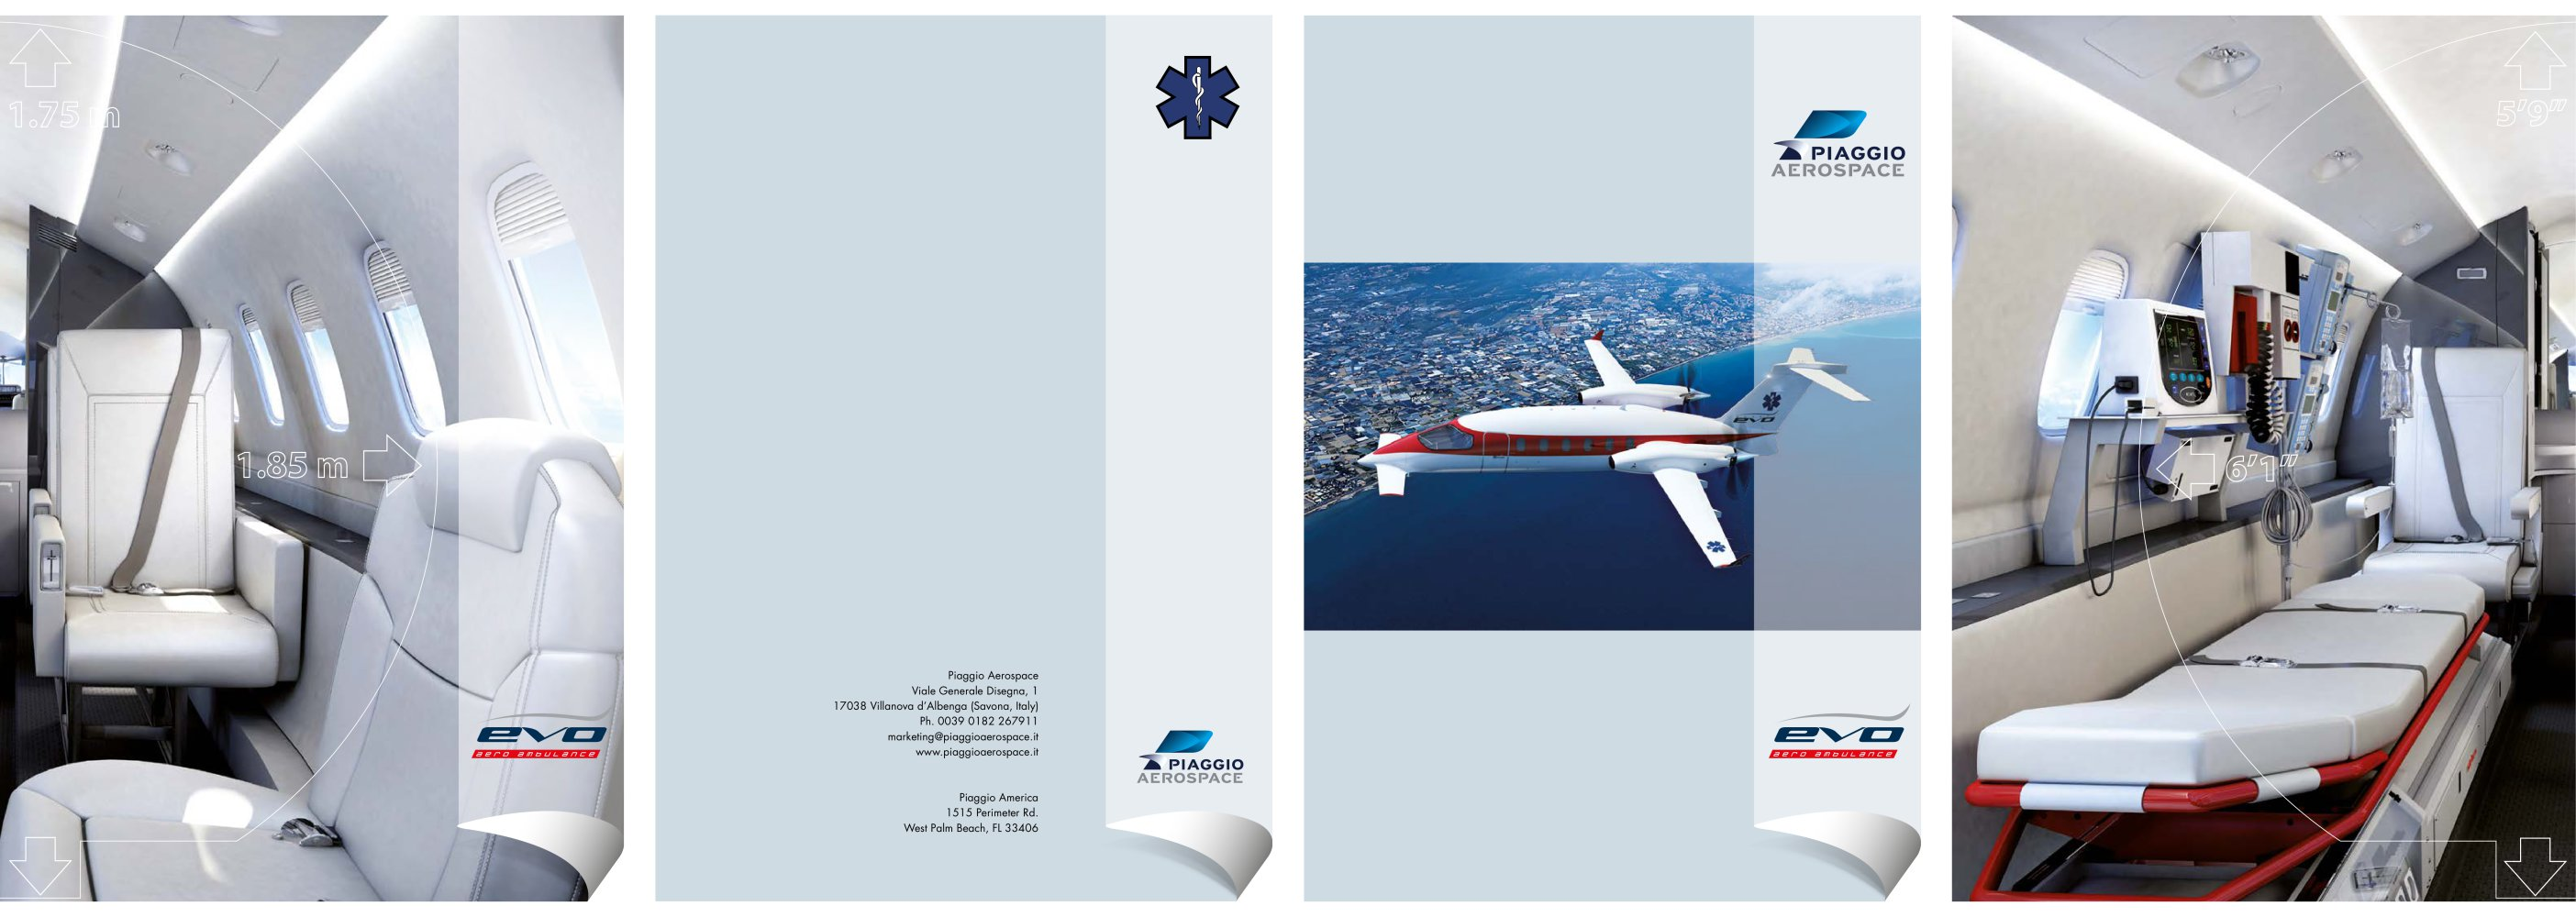 ambulance b - piaggio aerospace - pdf catalogue | technical